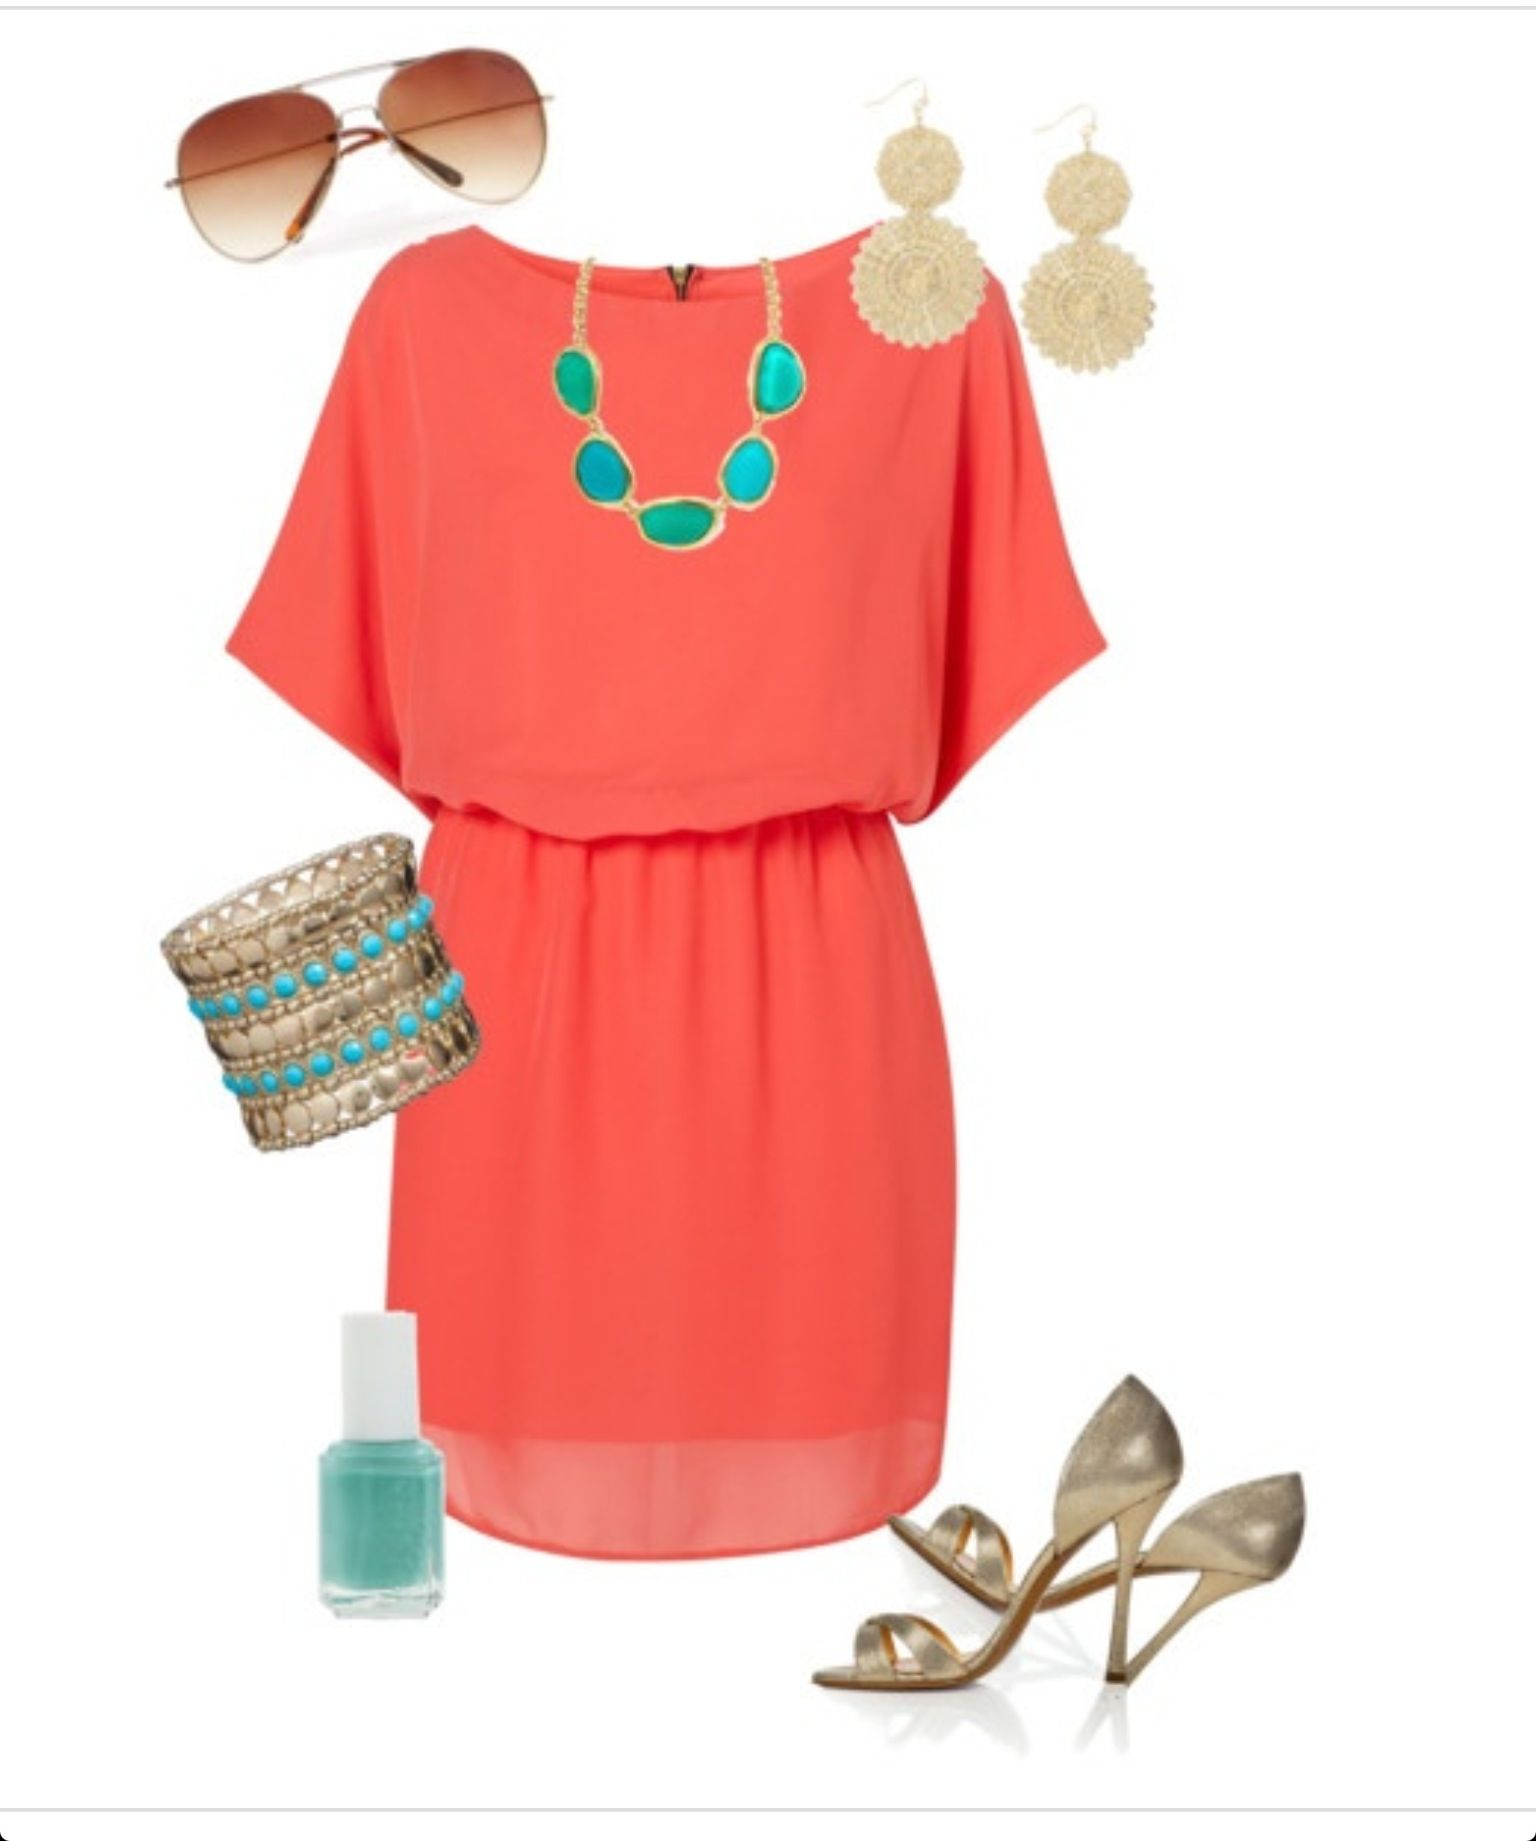 c68f18ecc2c1 Coral and teal with gold looks pretty nice !